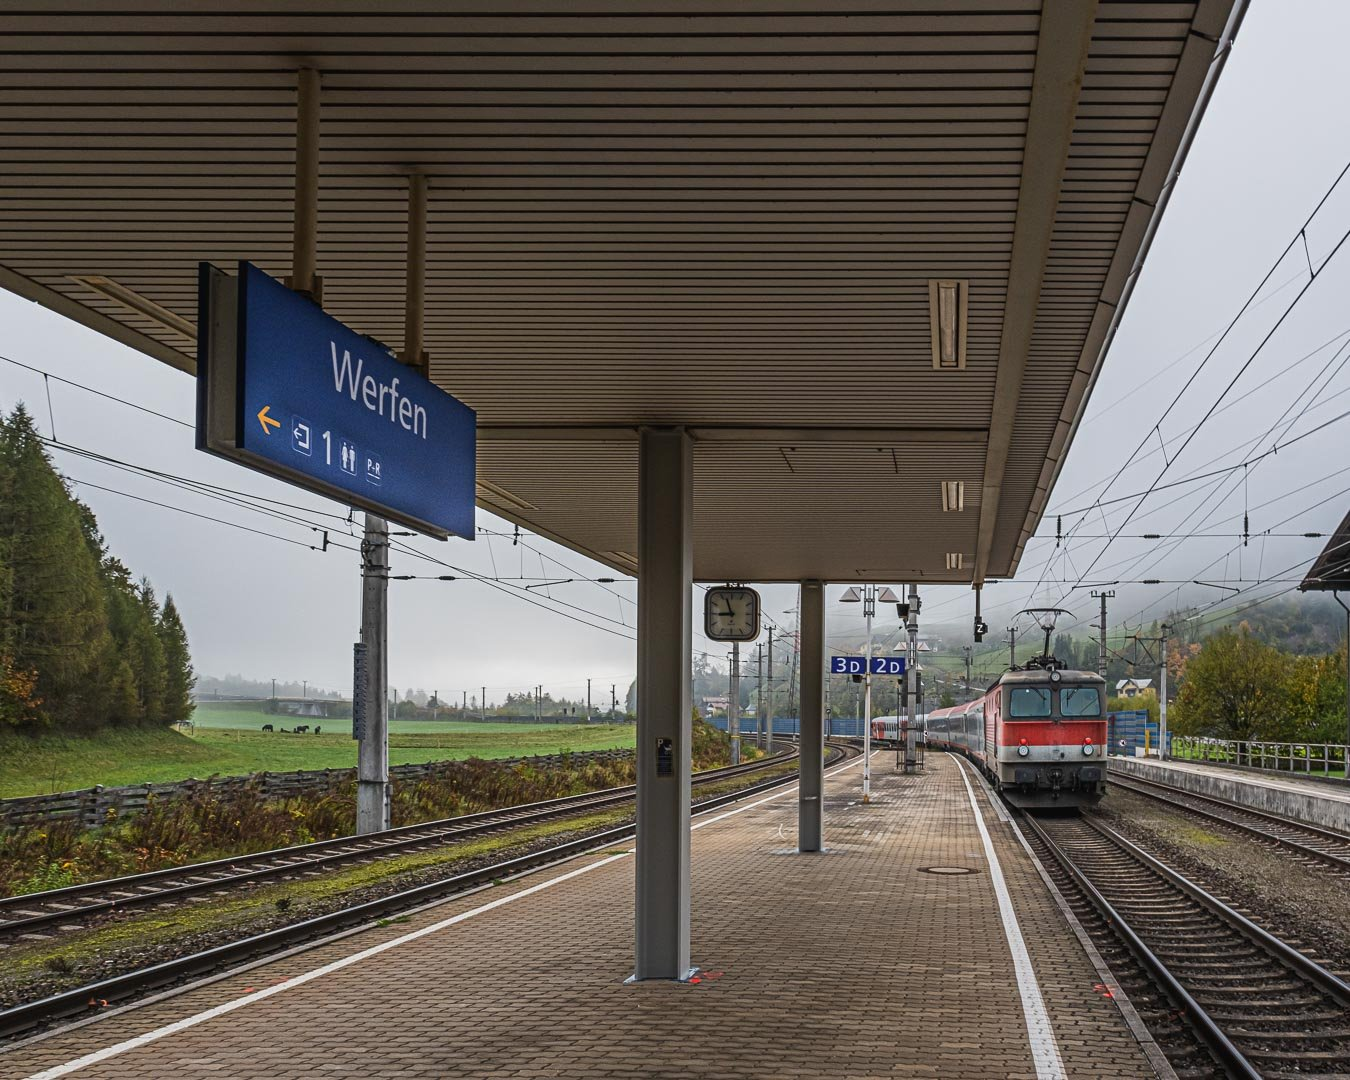 The Train station in Werfen when the train leaves